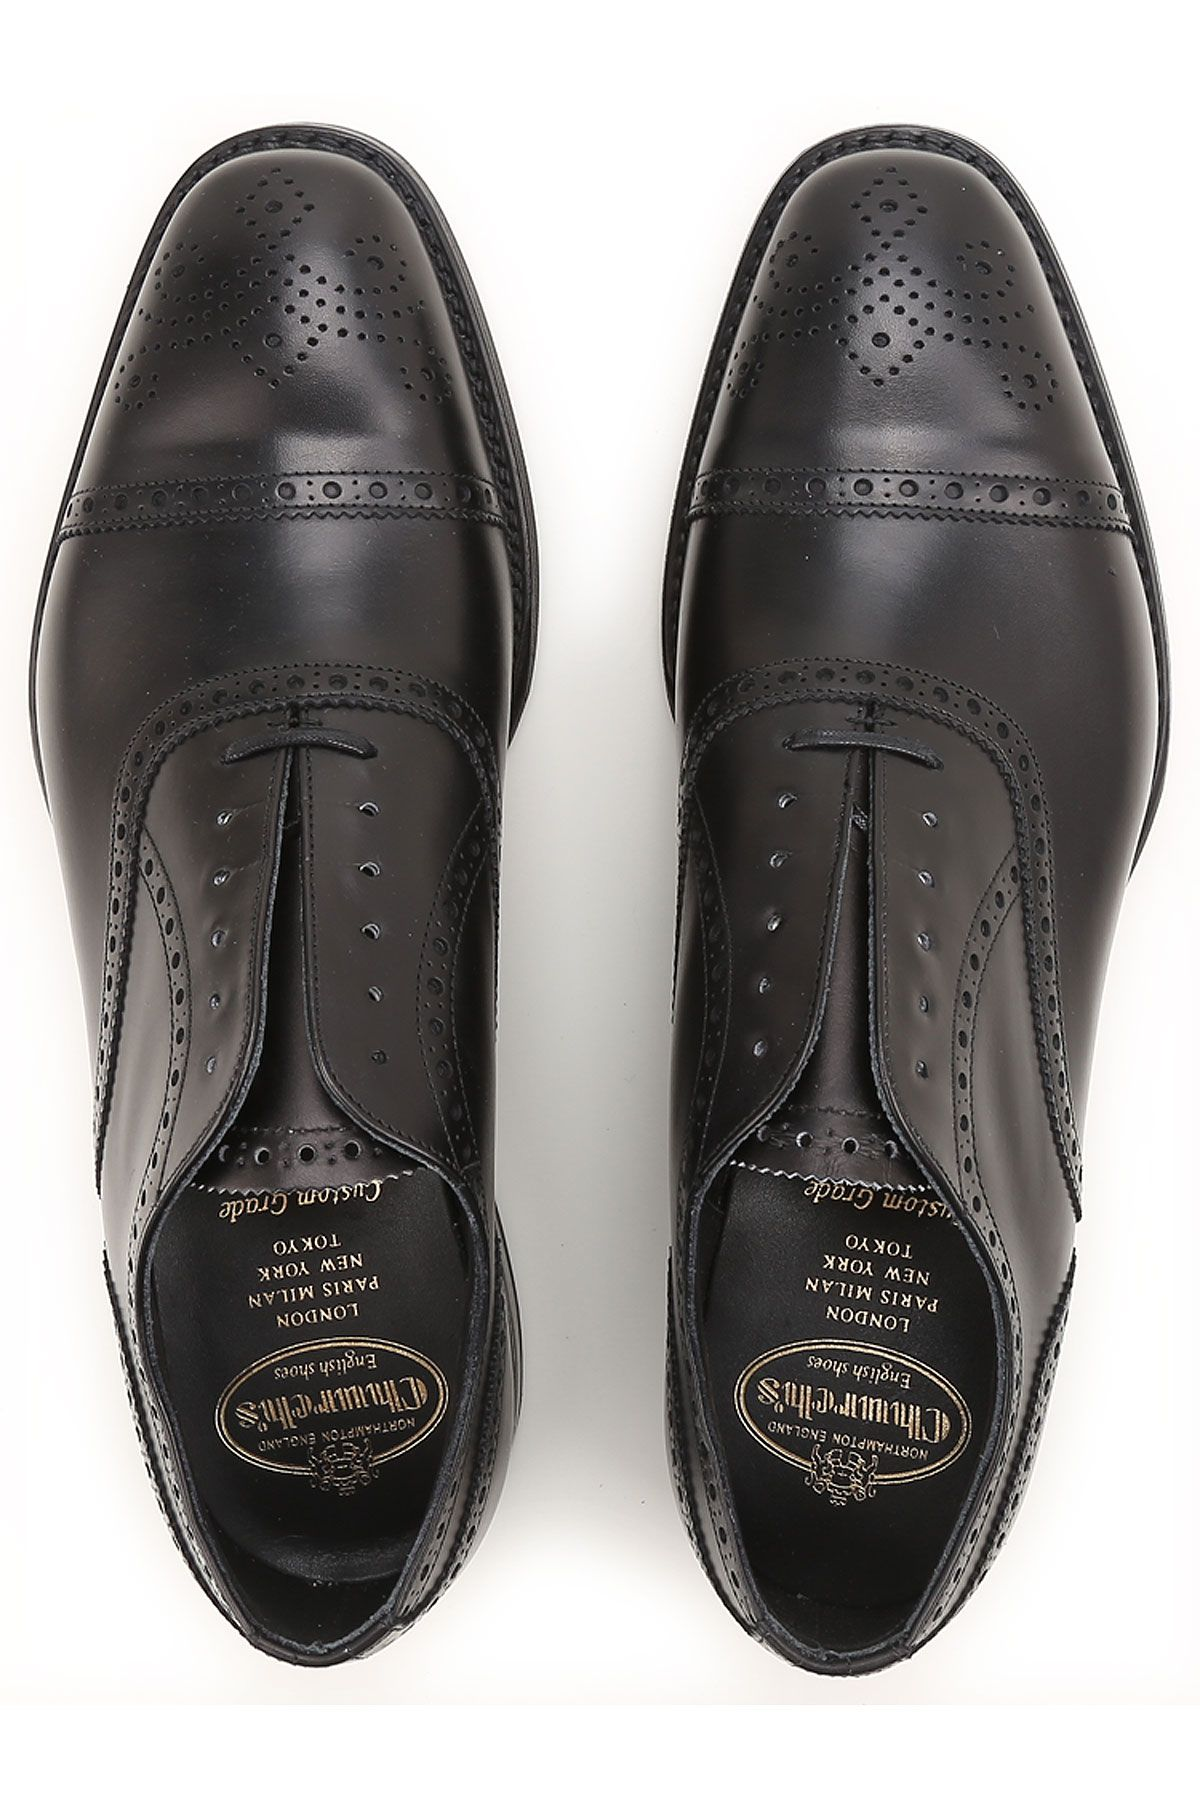 CHURCH'S Chaussures Chaussures CHURCH'S Homme Souliers   Chaussures Hommes 02914b